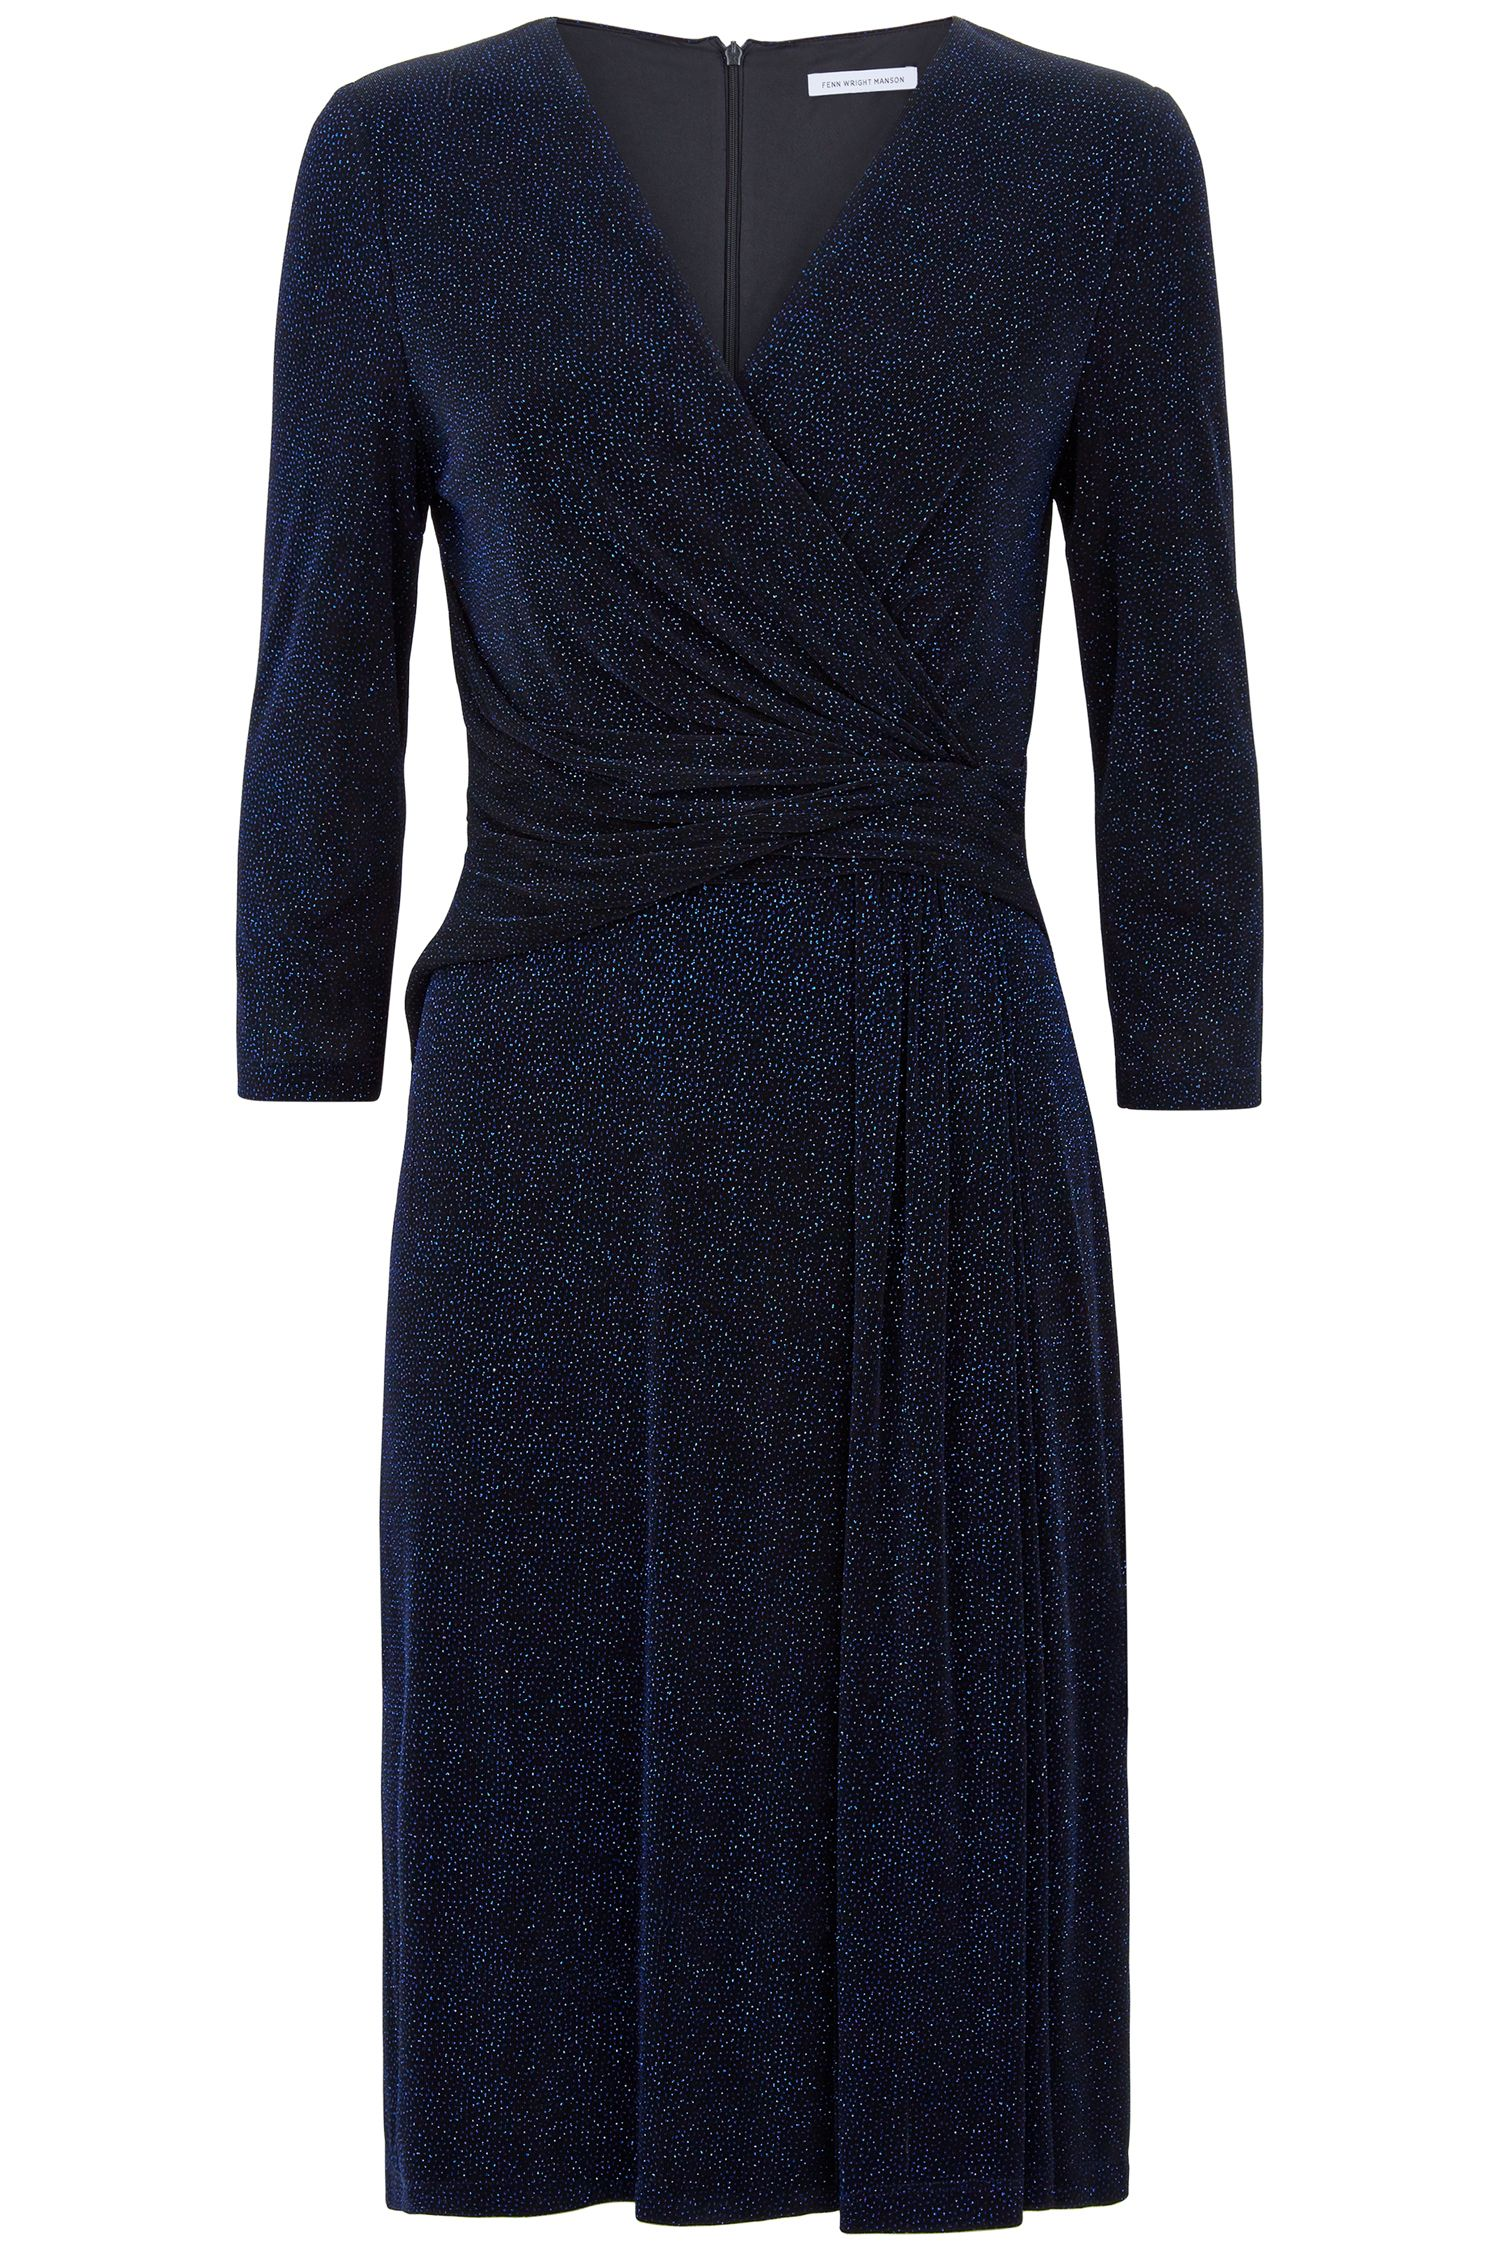 Fenn Wright Manson Zena Dress, Blue